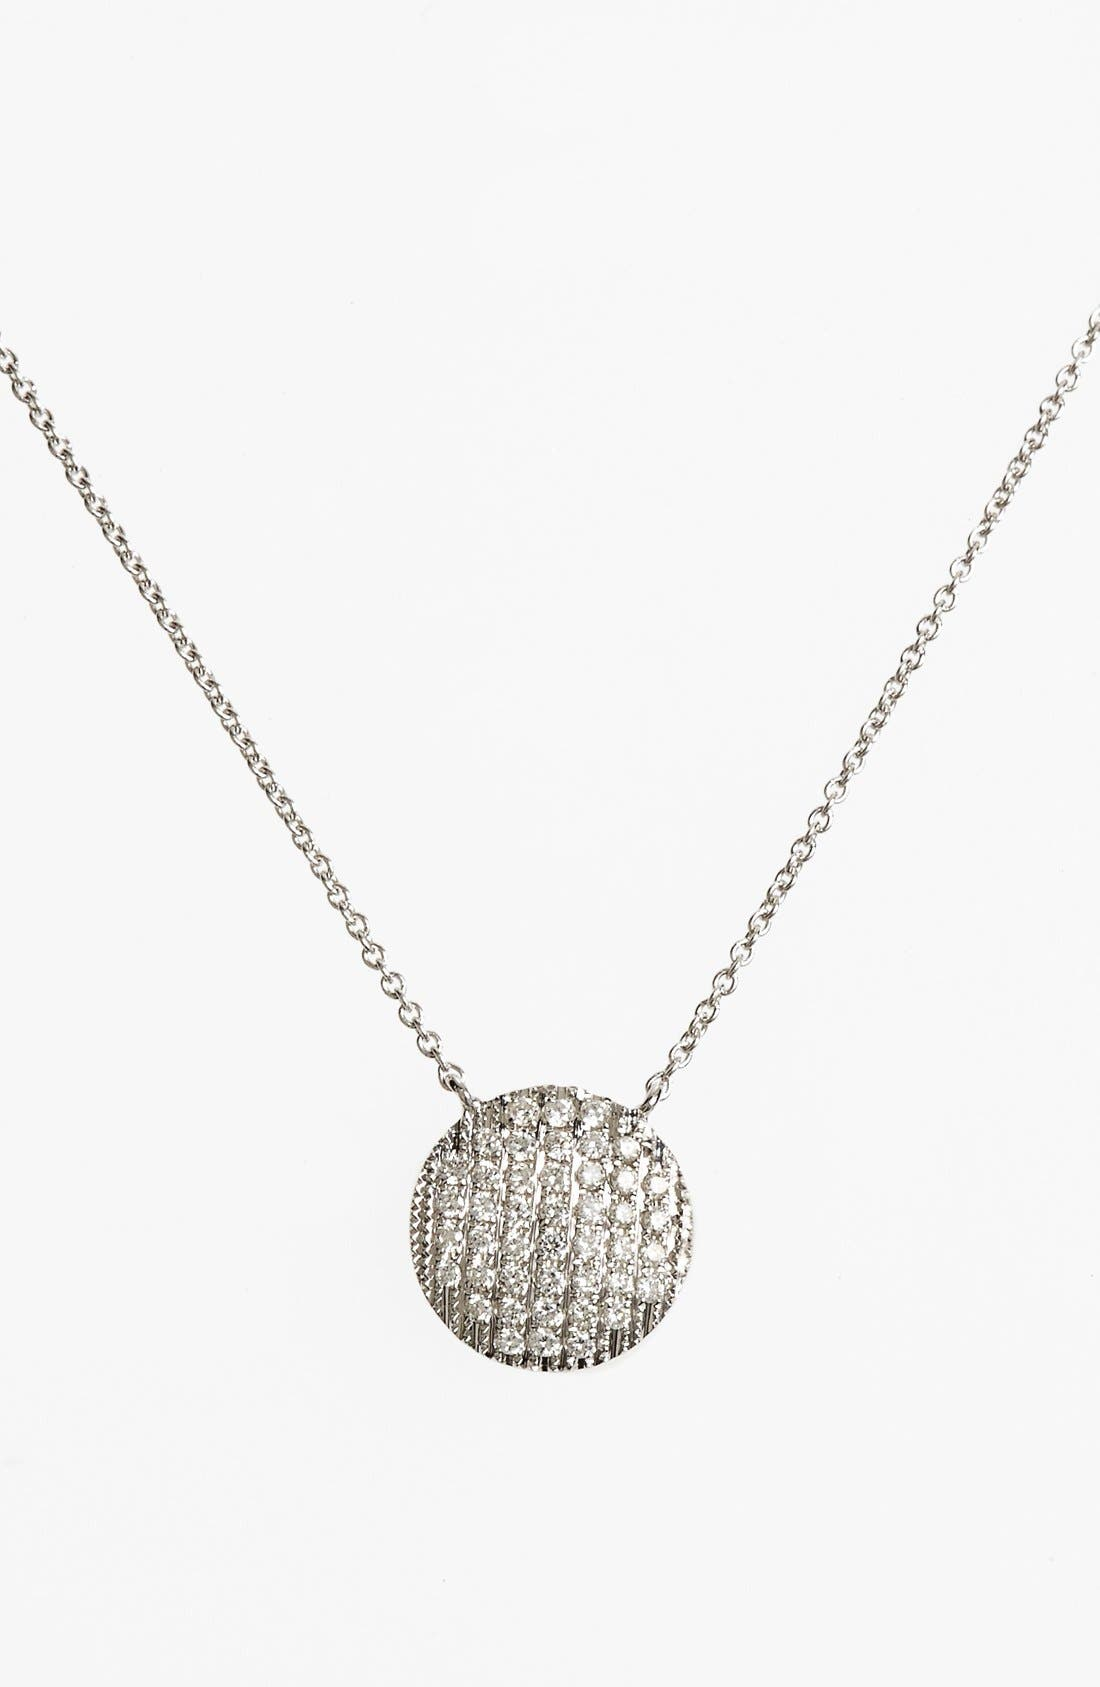 'Lauren Joy' Diamond Disc Pendant Necklace,                             Main thumbnail 1, color,                             White Gold